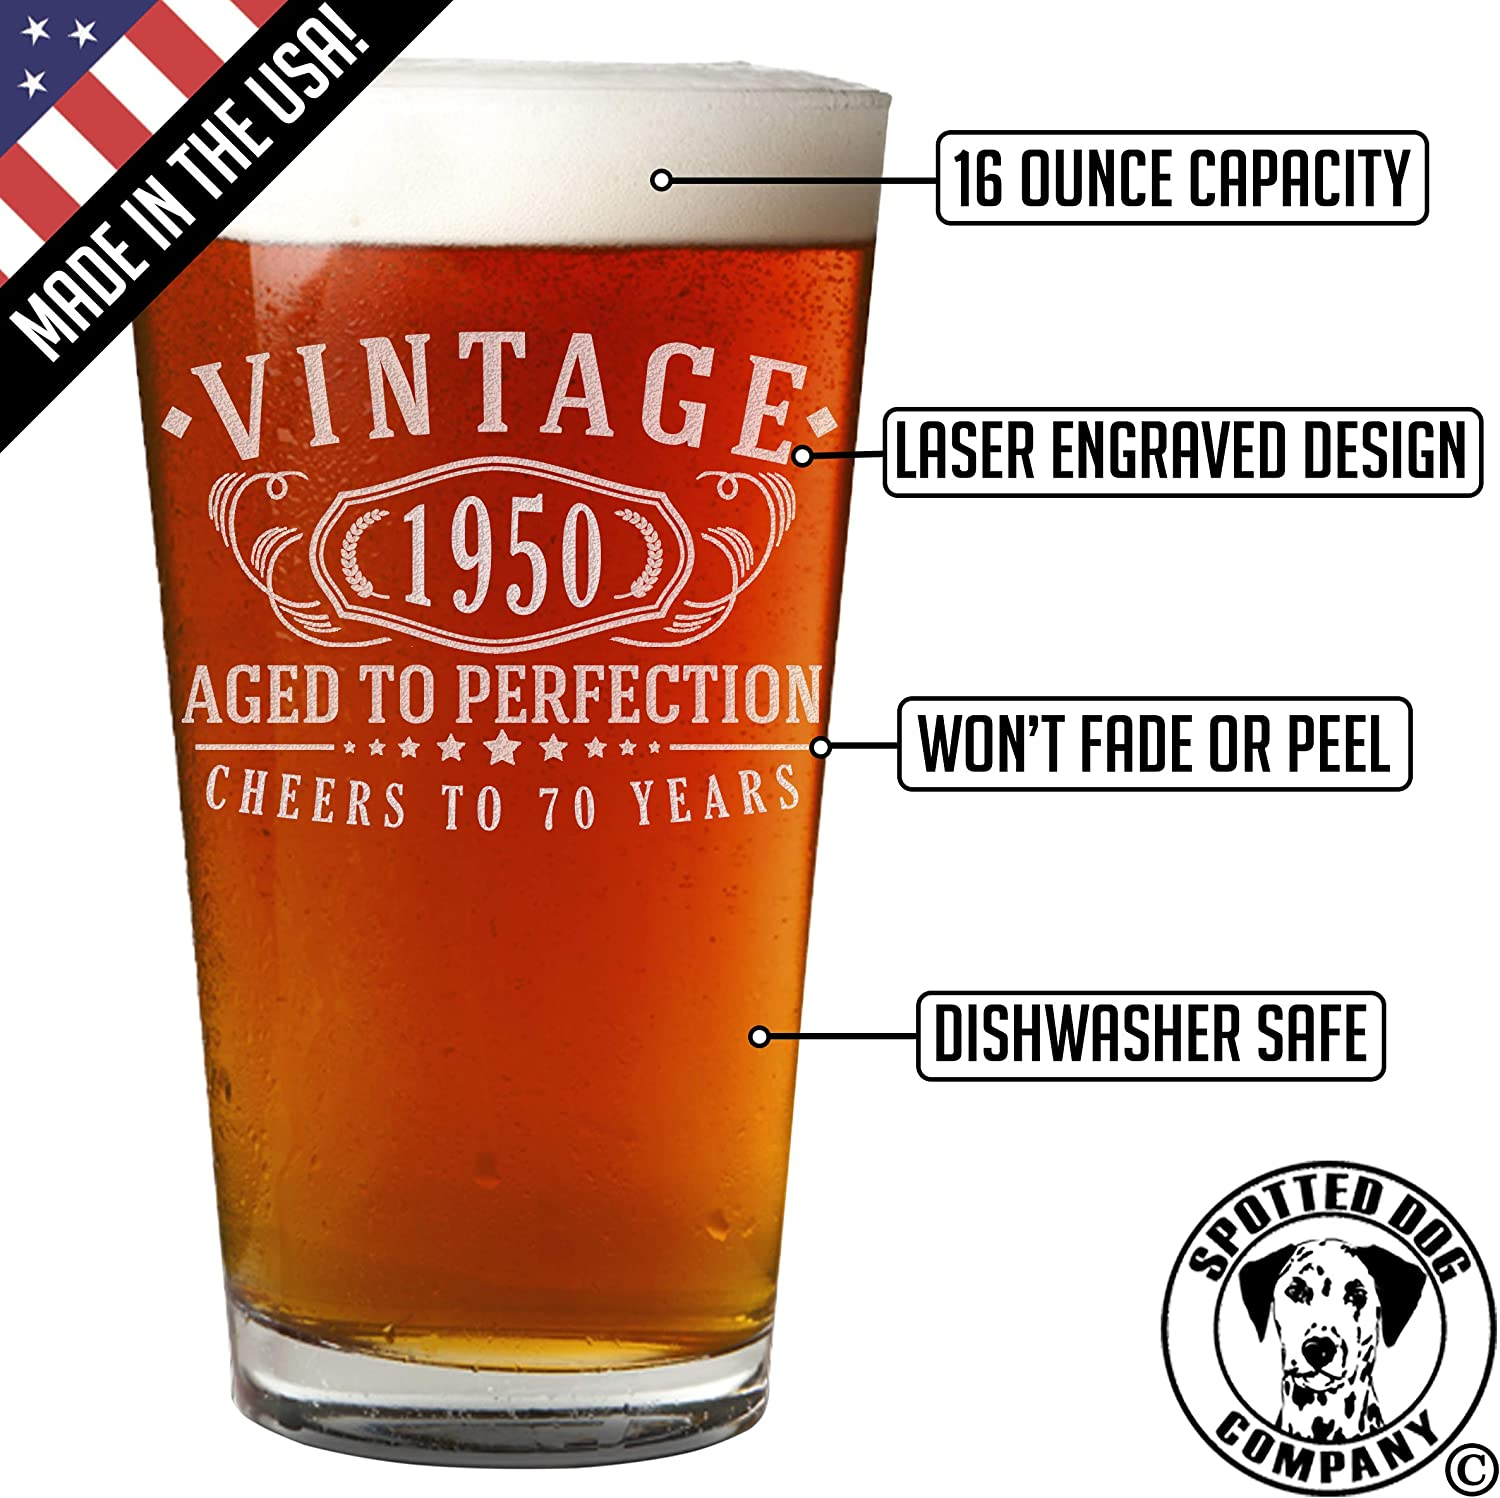 Vintage 1950 Etched 16oz Pint Beer Soda Glass 70th Birthday Aged to Perfection 70 Years Old Gifts